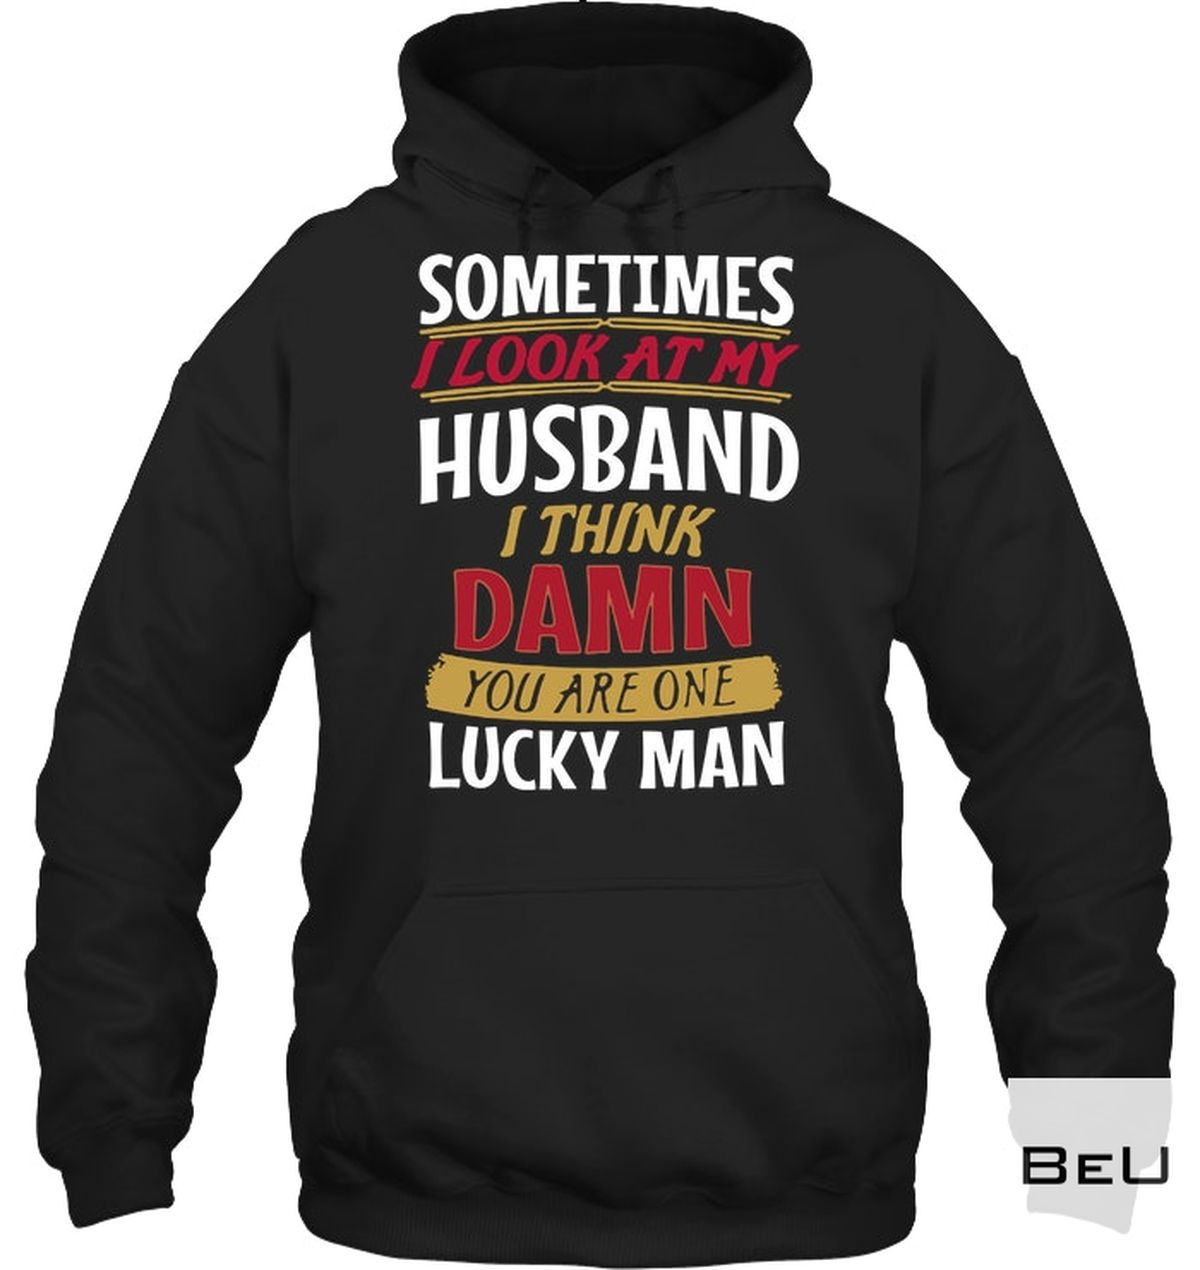 Drop Shipping Sometimes I Look At My Husband And Think Damn You Are One Lucky Man Shirt